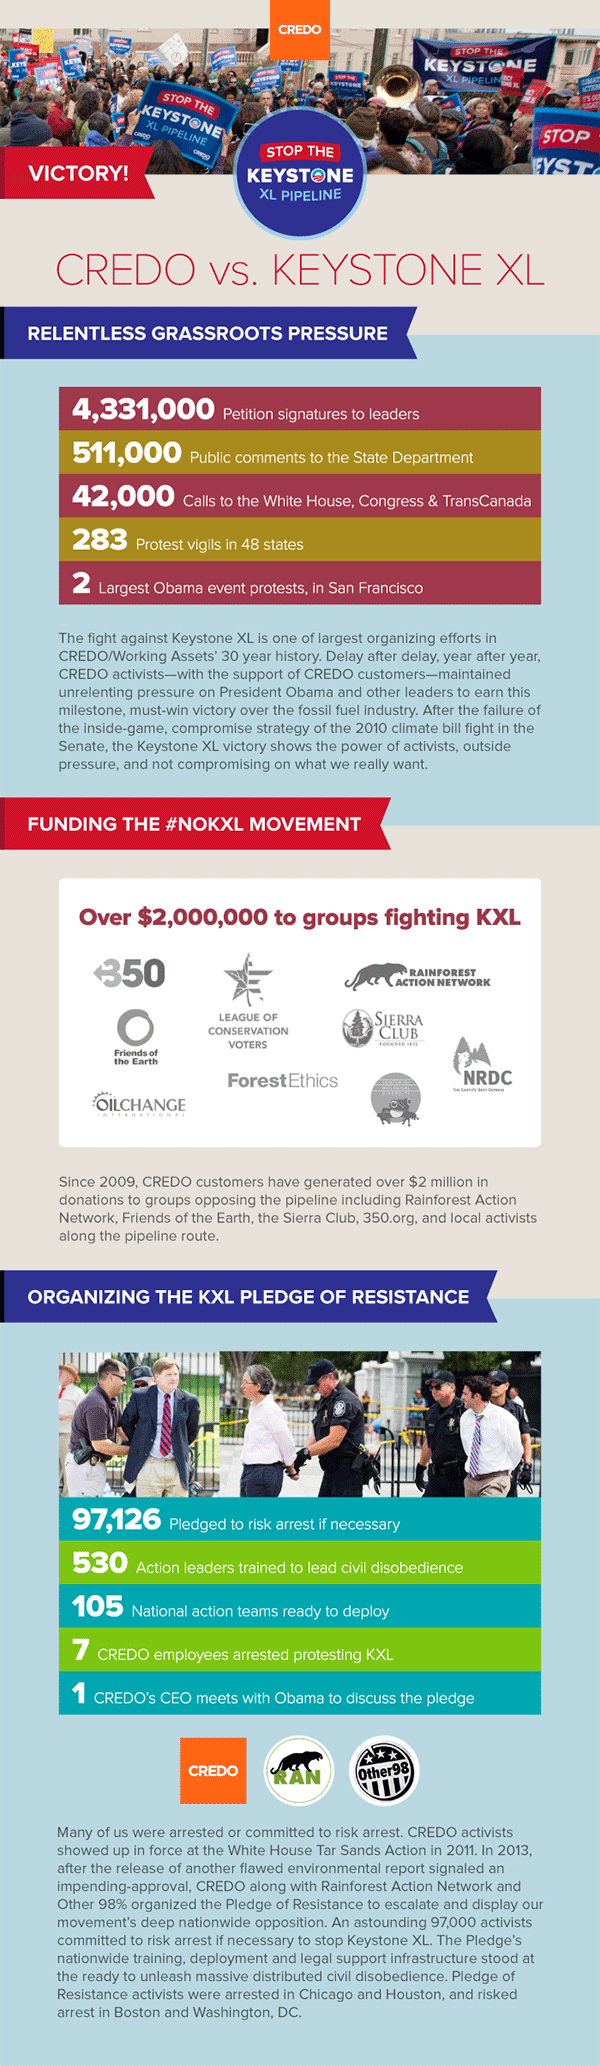 Infographic about CREDO and Keystone XL